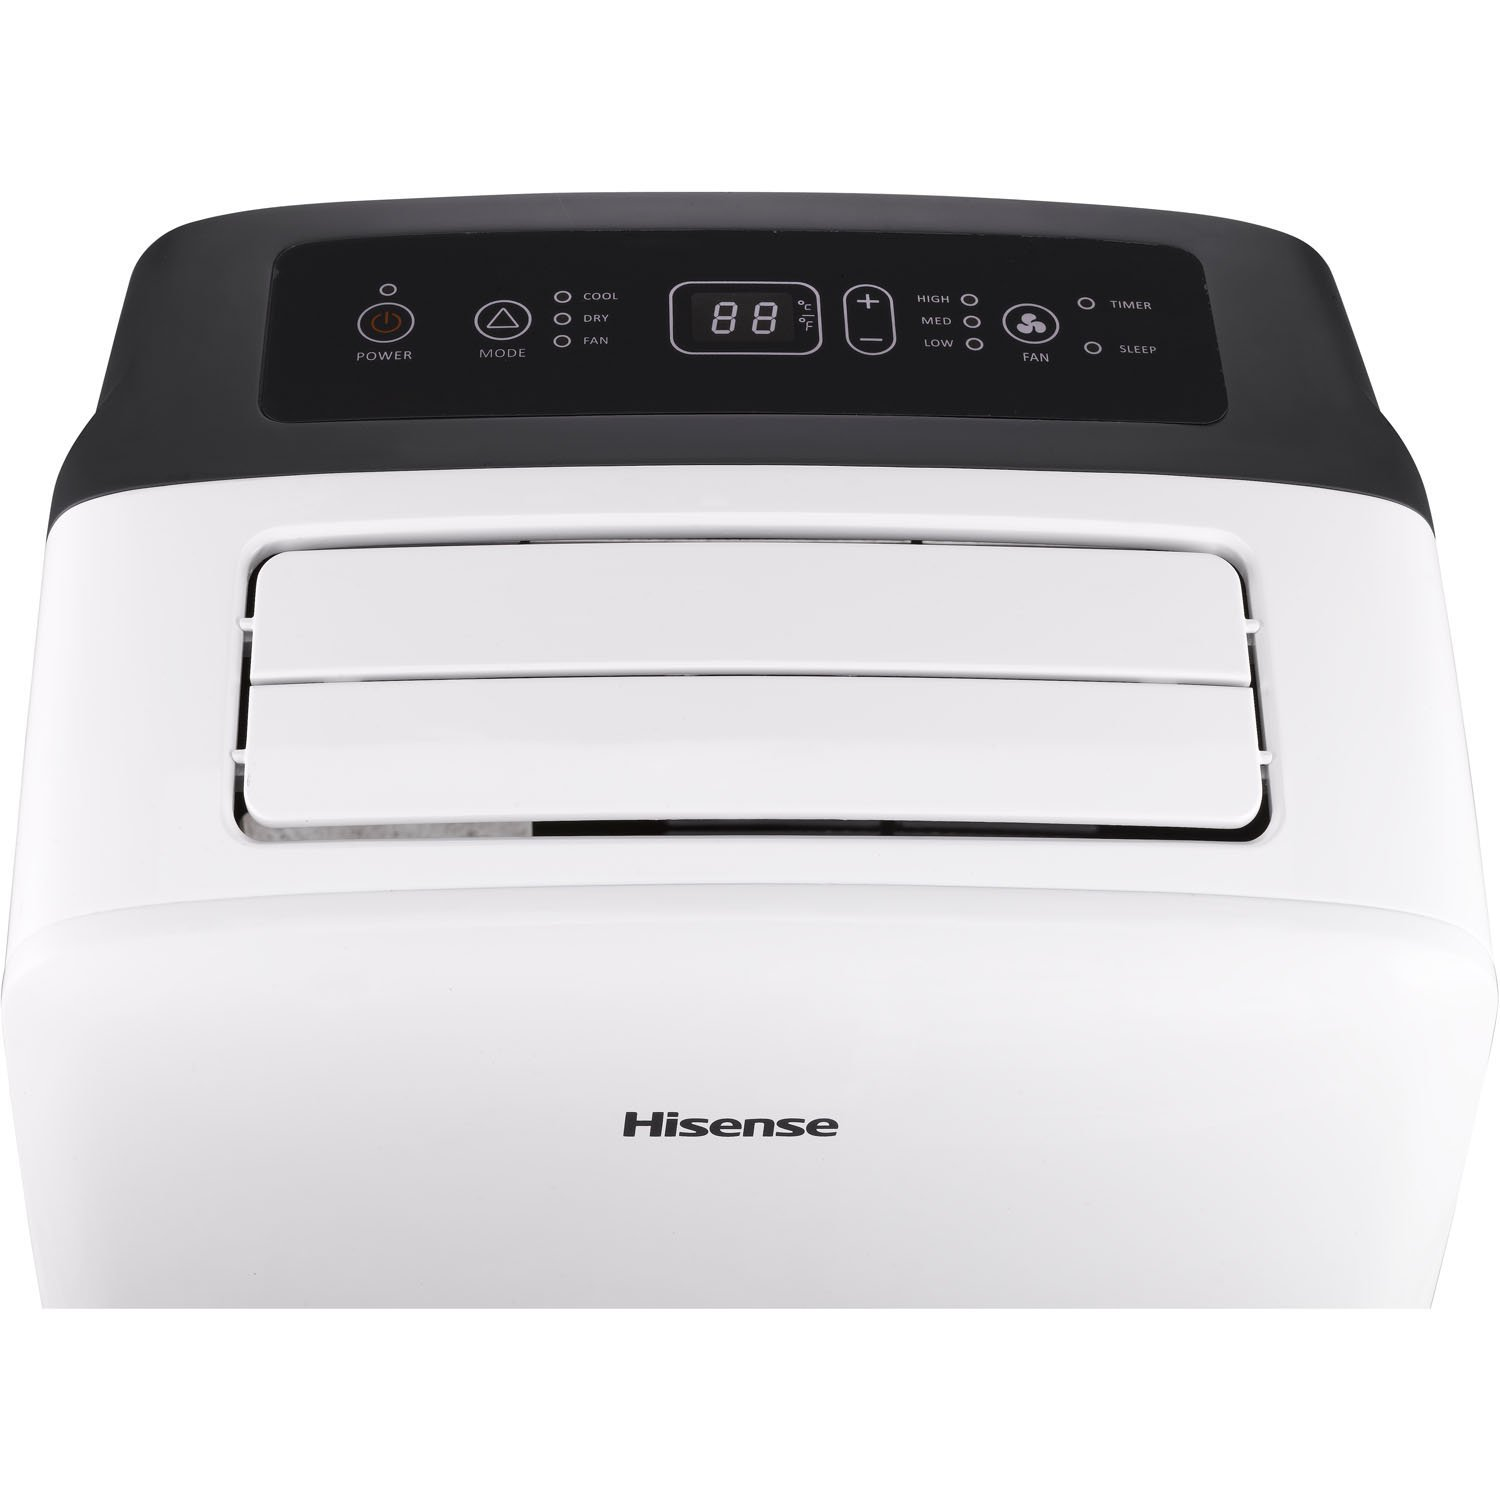 Portable Air Conditioner Troubleshooting Amazoncom Hisense Cap 10cr1sejs Portable Air Conditioner With